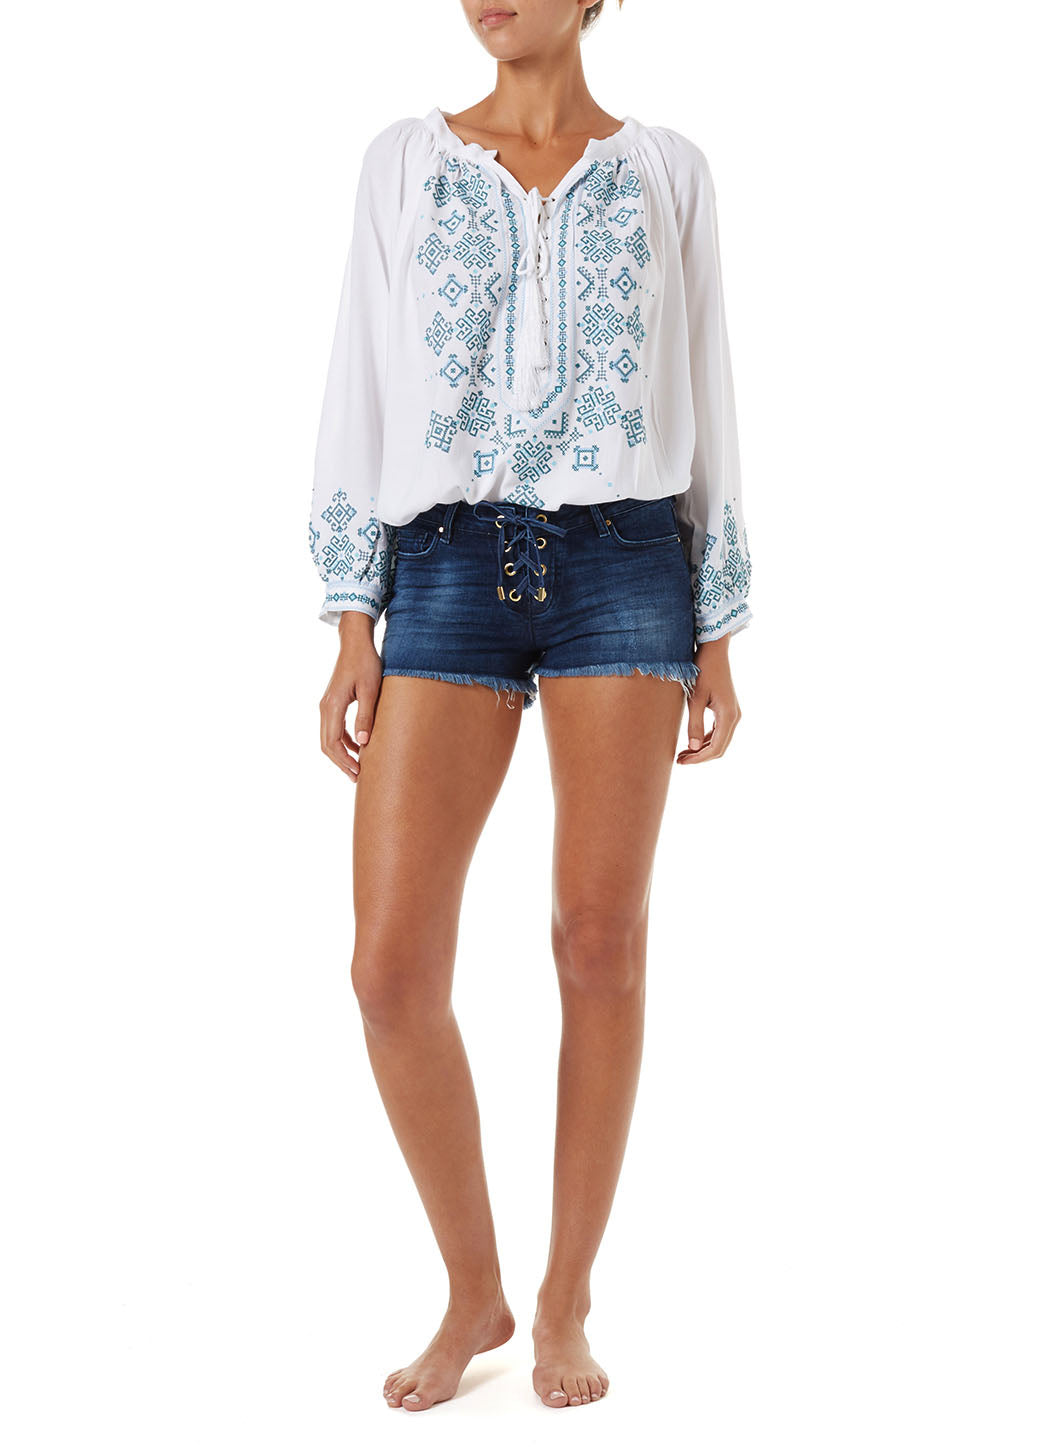 Alexi Denim Lace-Up Shorts - Melissa Odabash Beachwear